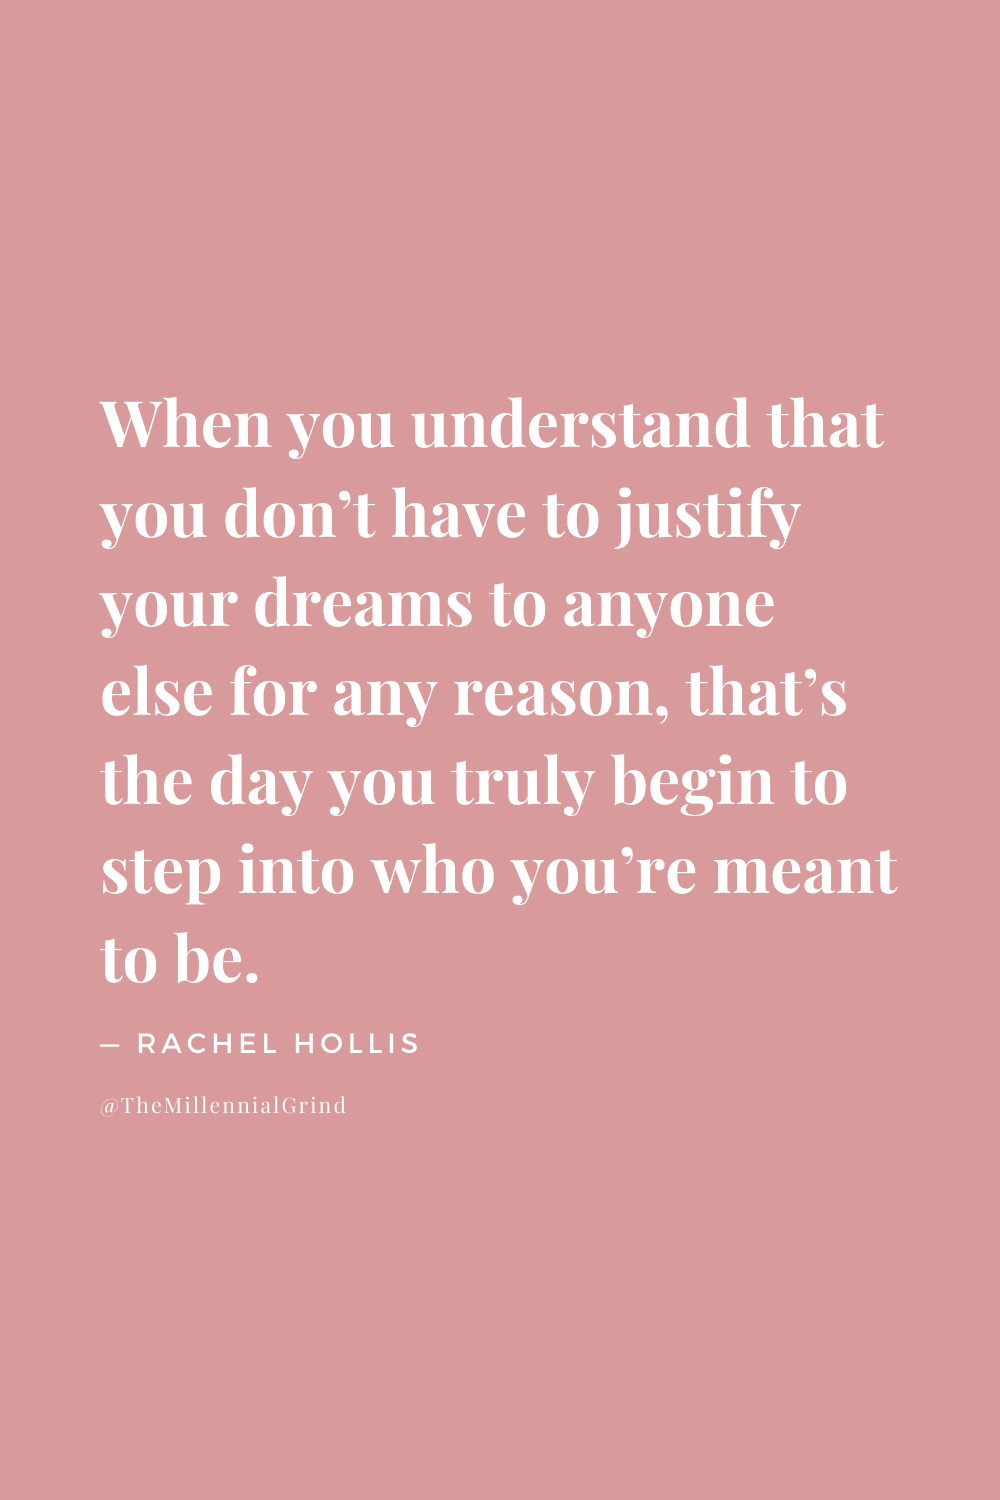 Quotes from Girl, Stop Apologizing by Rachel Hollis